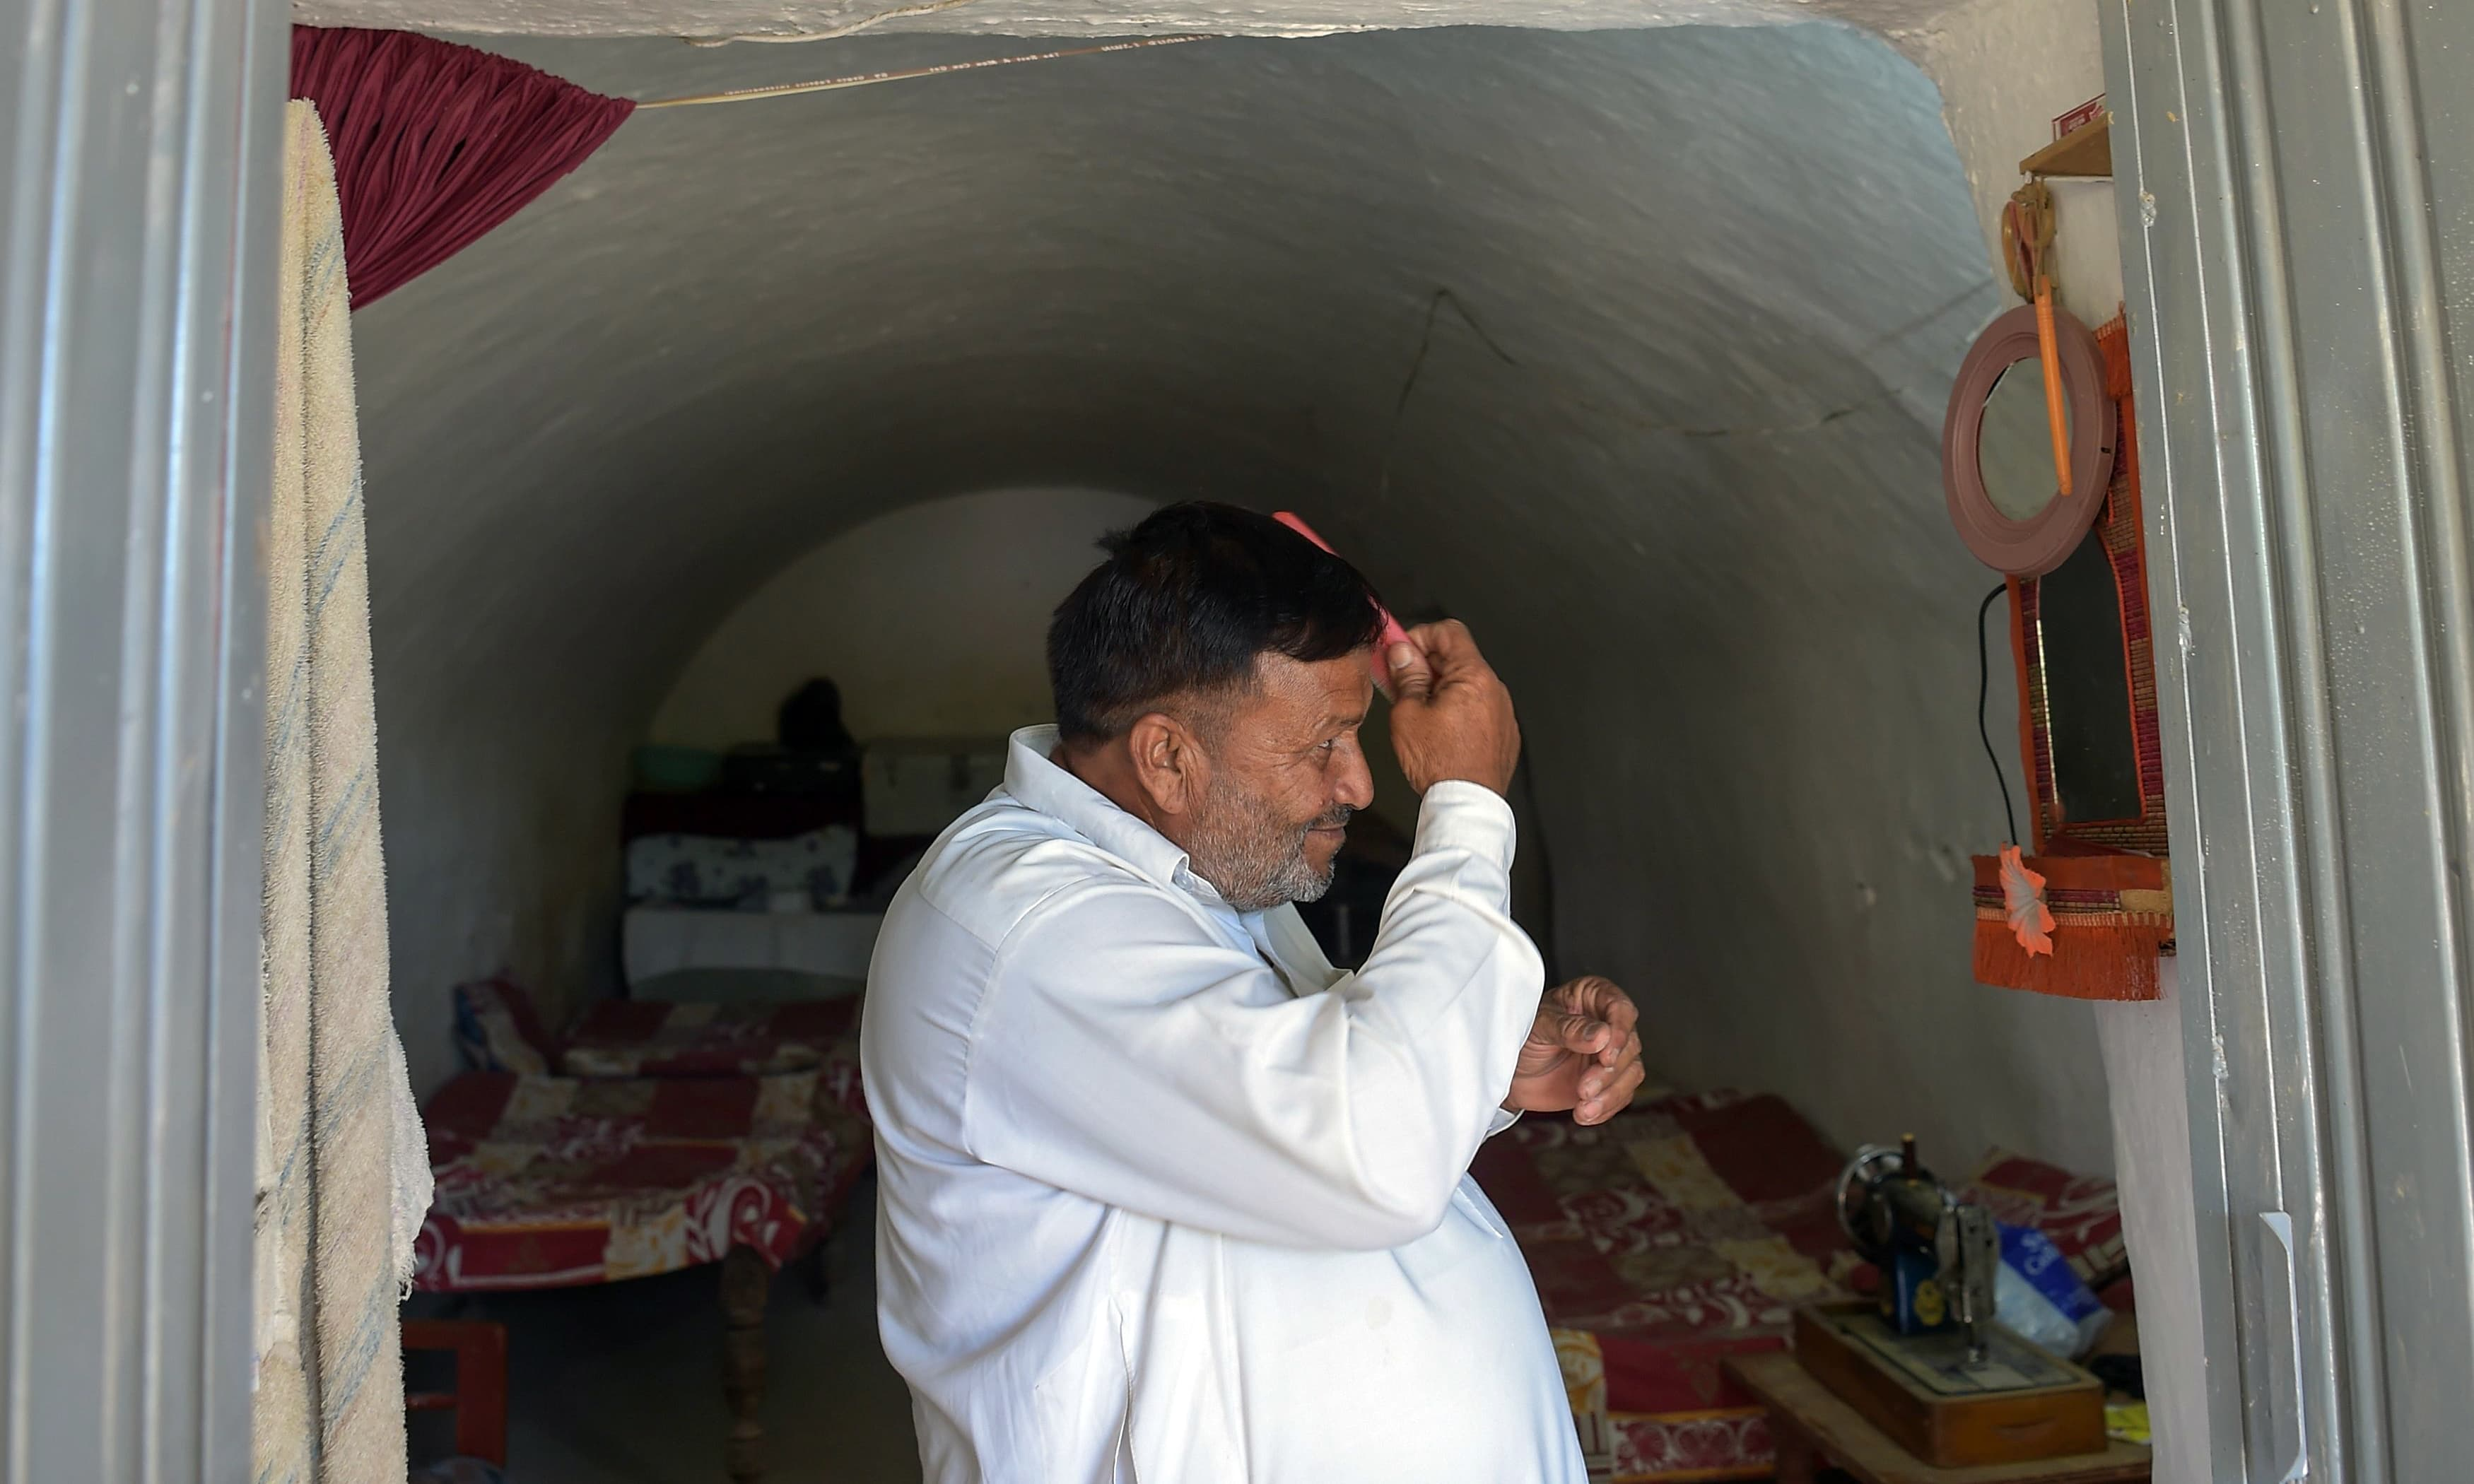 Haji Abdul Rasheed combs his hair at the entrance to his cave room in Nikko village near Hasan Abdal. —AFP